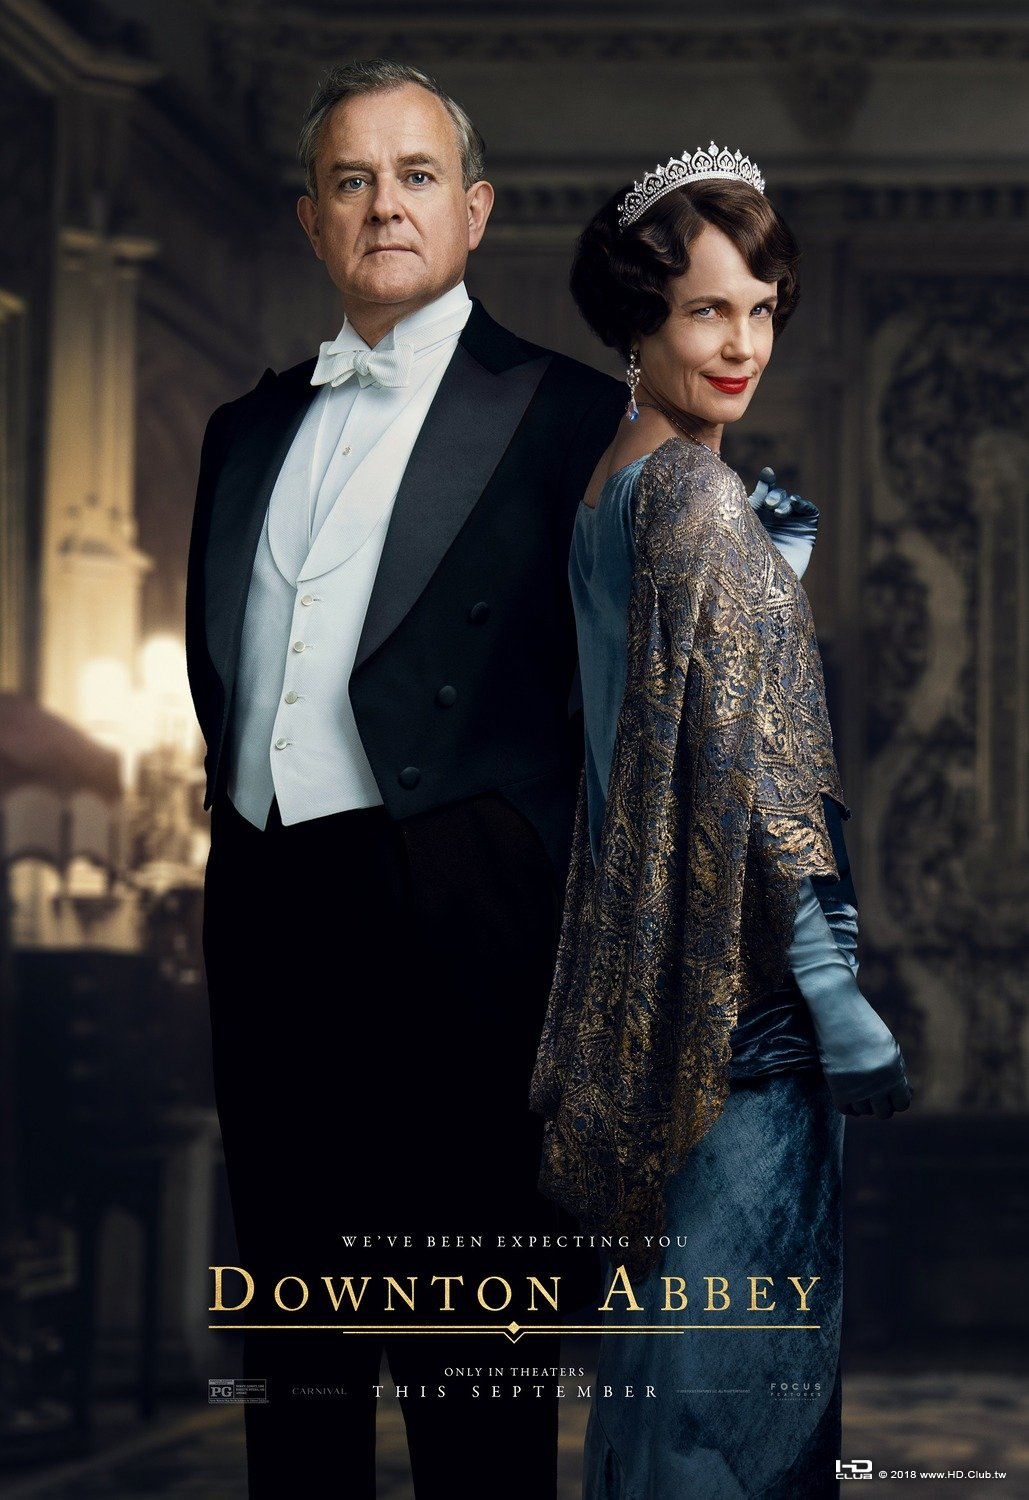 downton_abbey_ver22_xlg.jpg